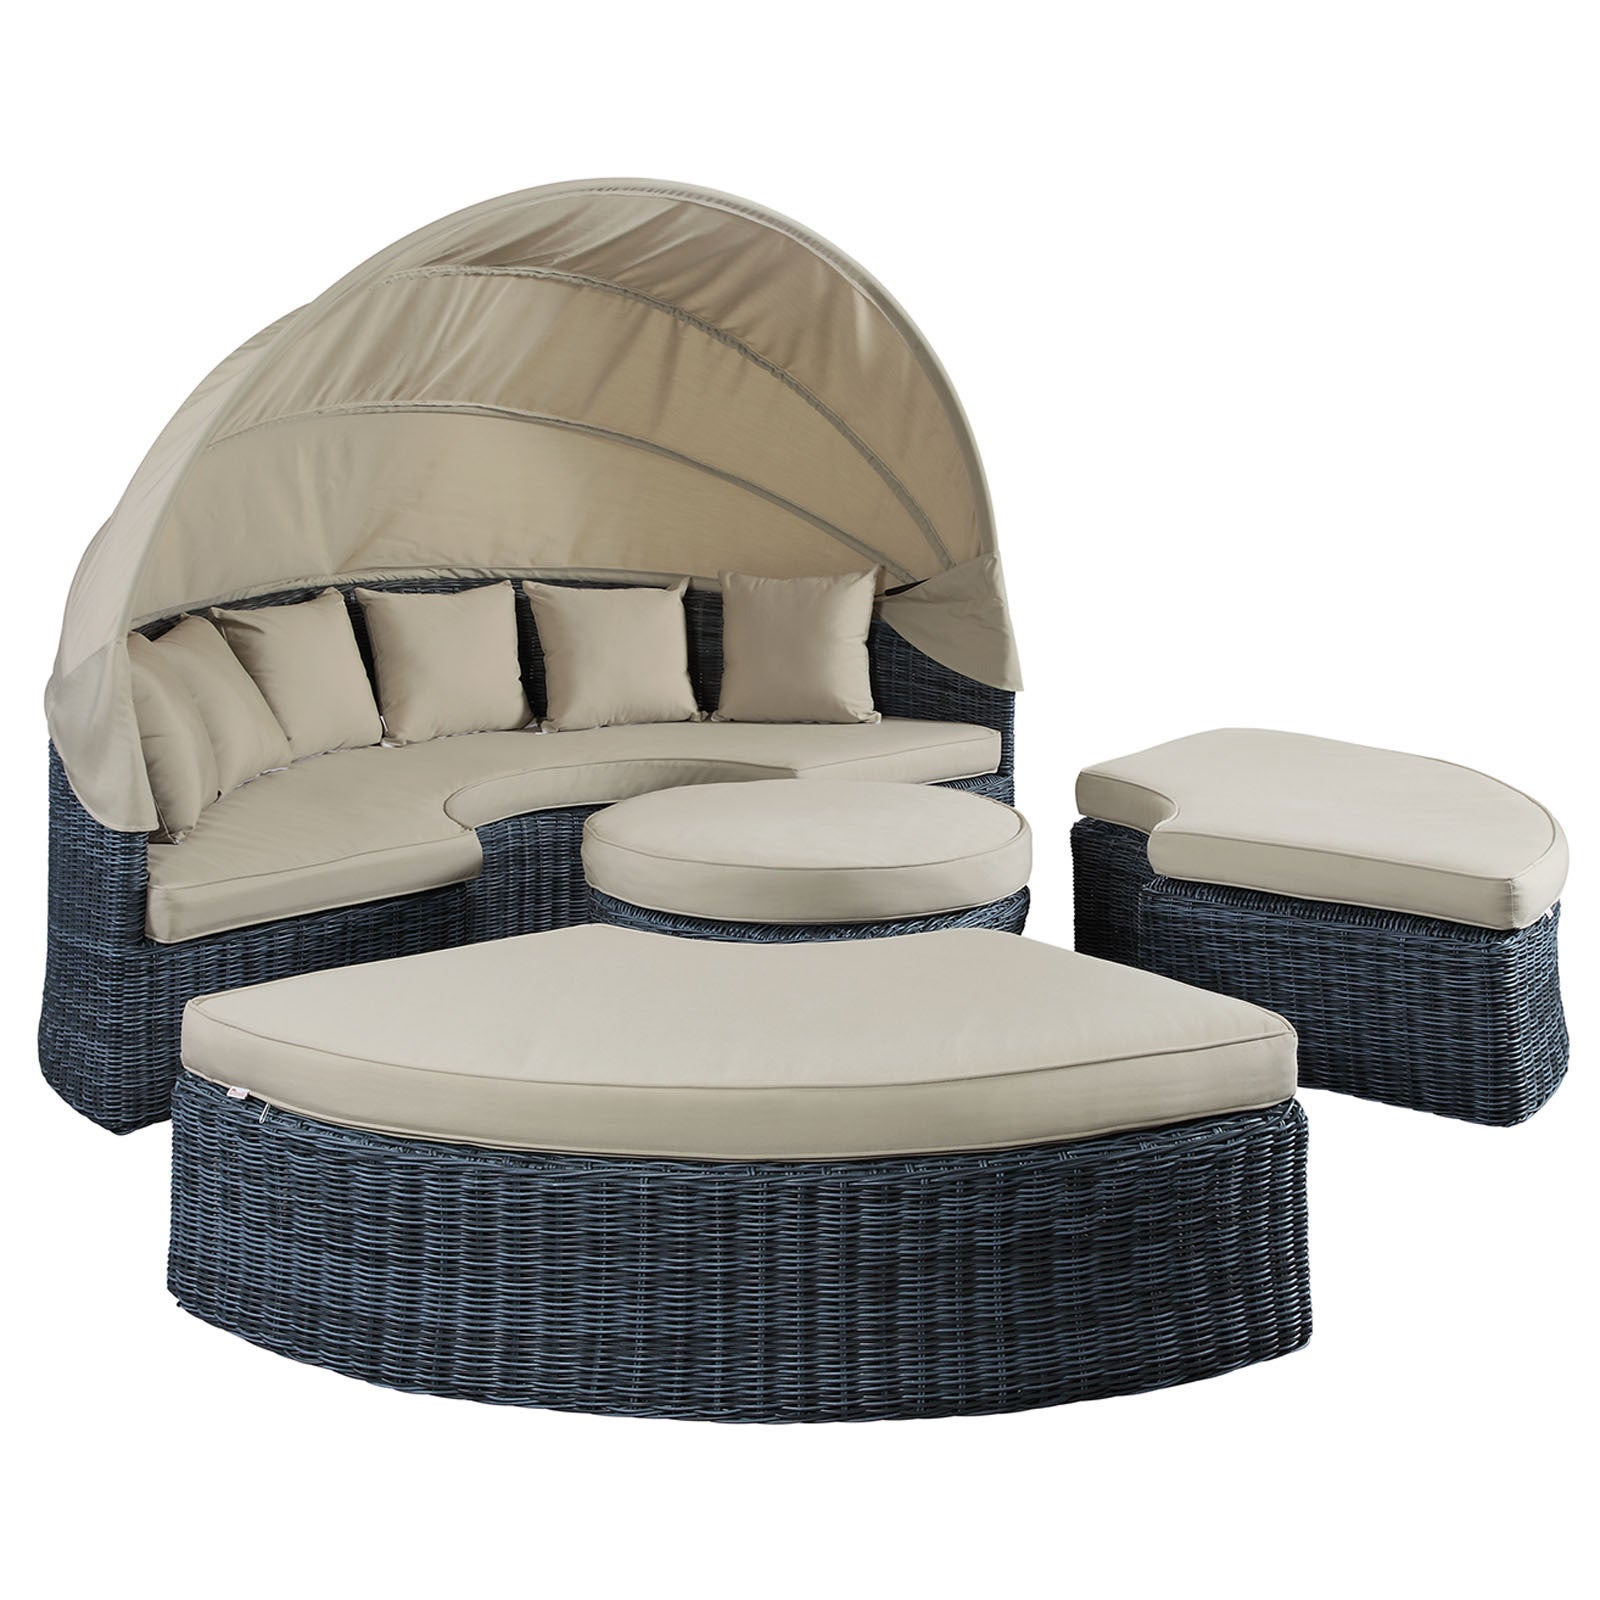 Summon Canopy Outdoor Patio Daybed On Free Shipping Today 11161395